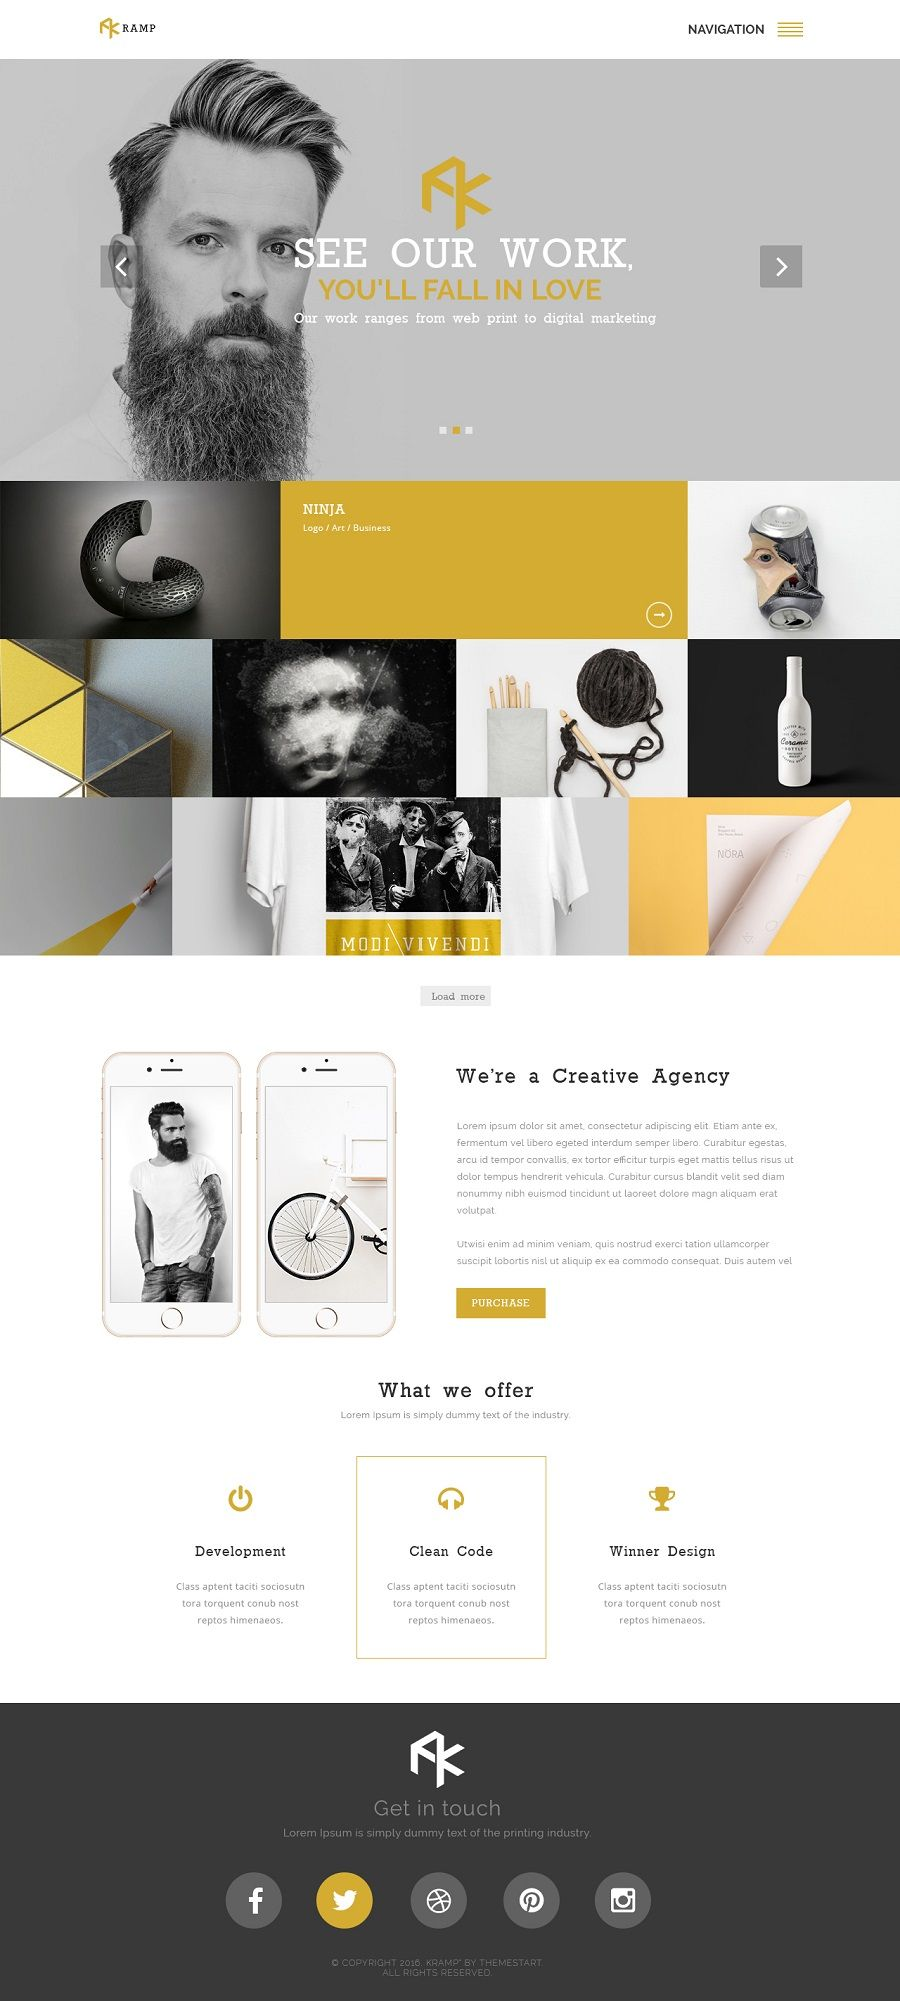 47 Most Creative Wordpress Themes 2020 Updated Homepage Design Wordpress Design Web Design